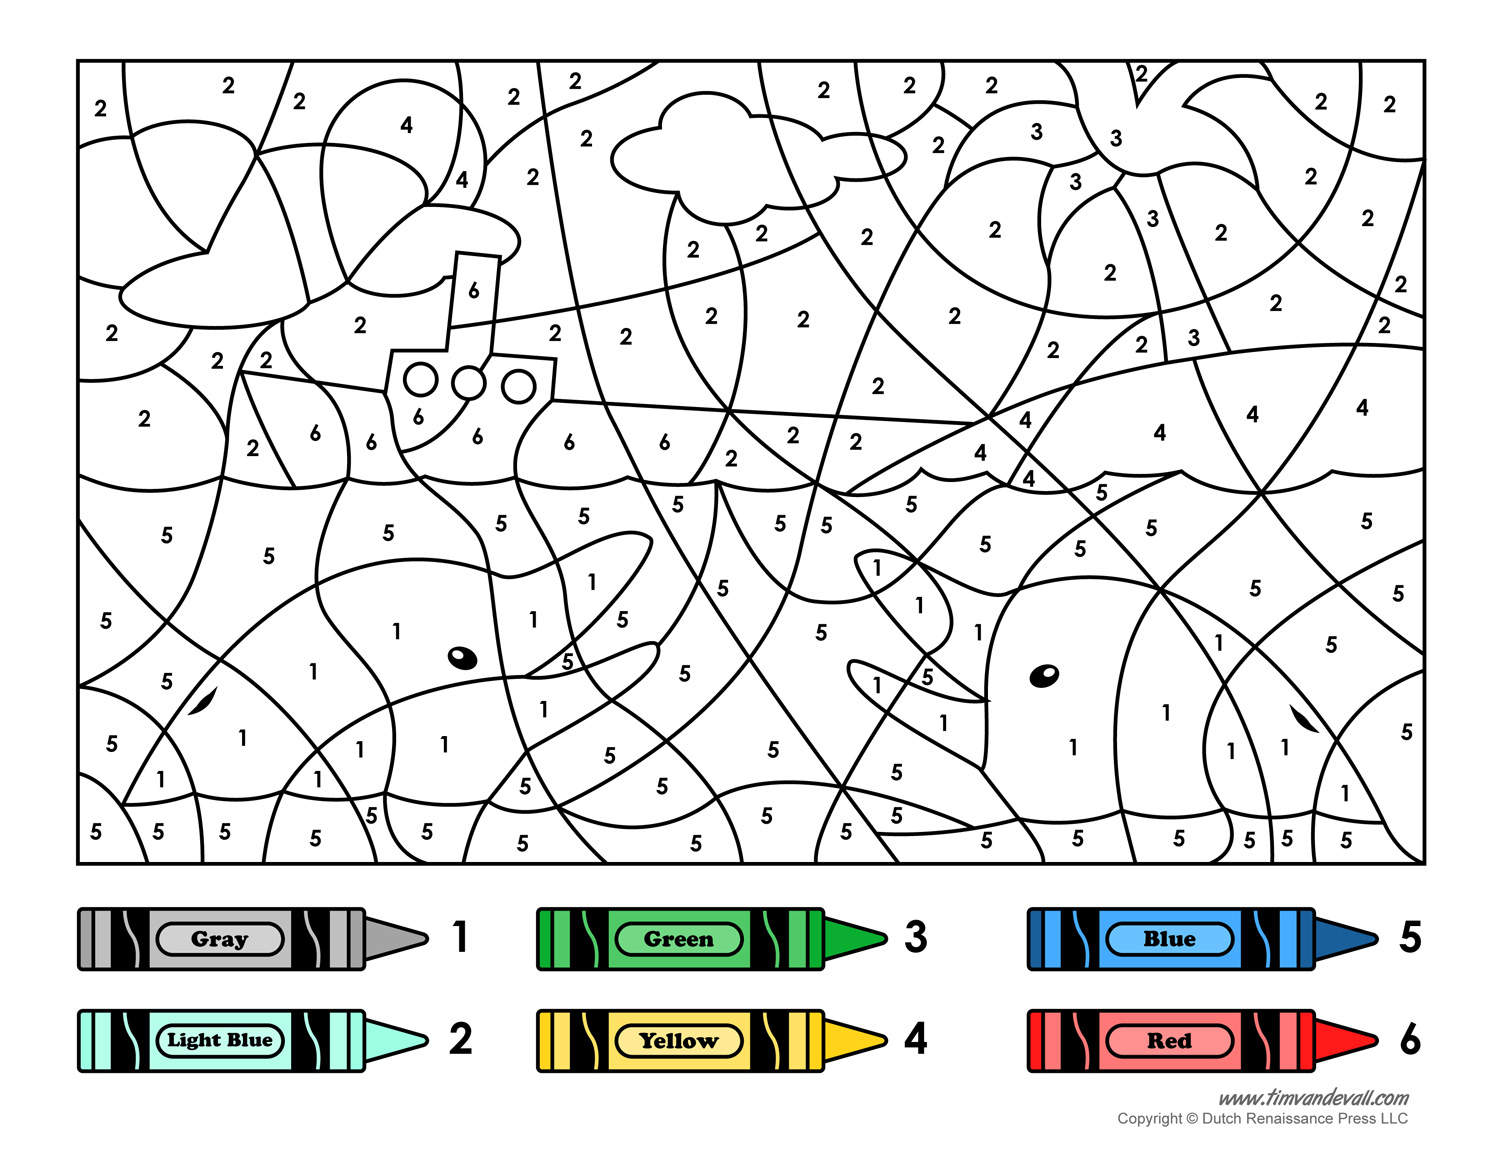 Free Ship Colour By Number Coloring Pages Free Printable Color By Number Coloring Pages